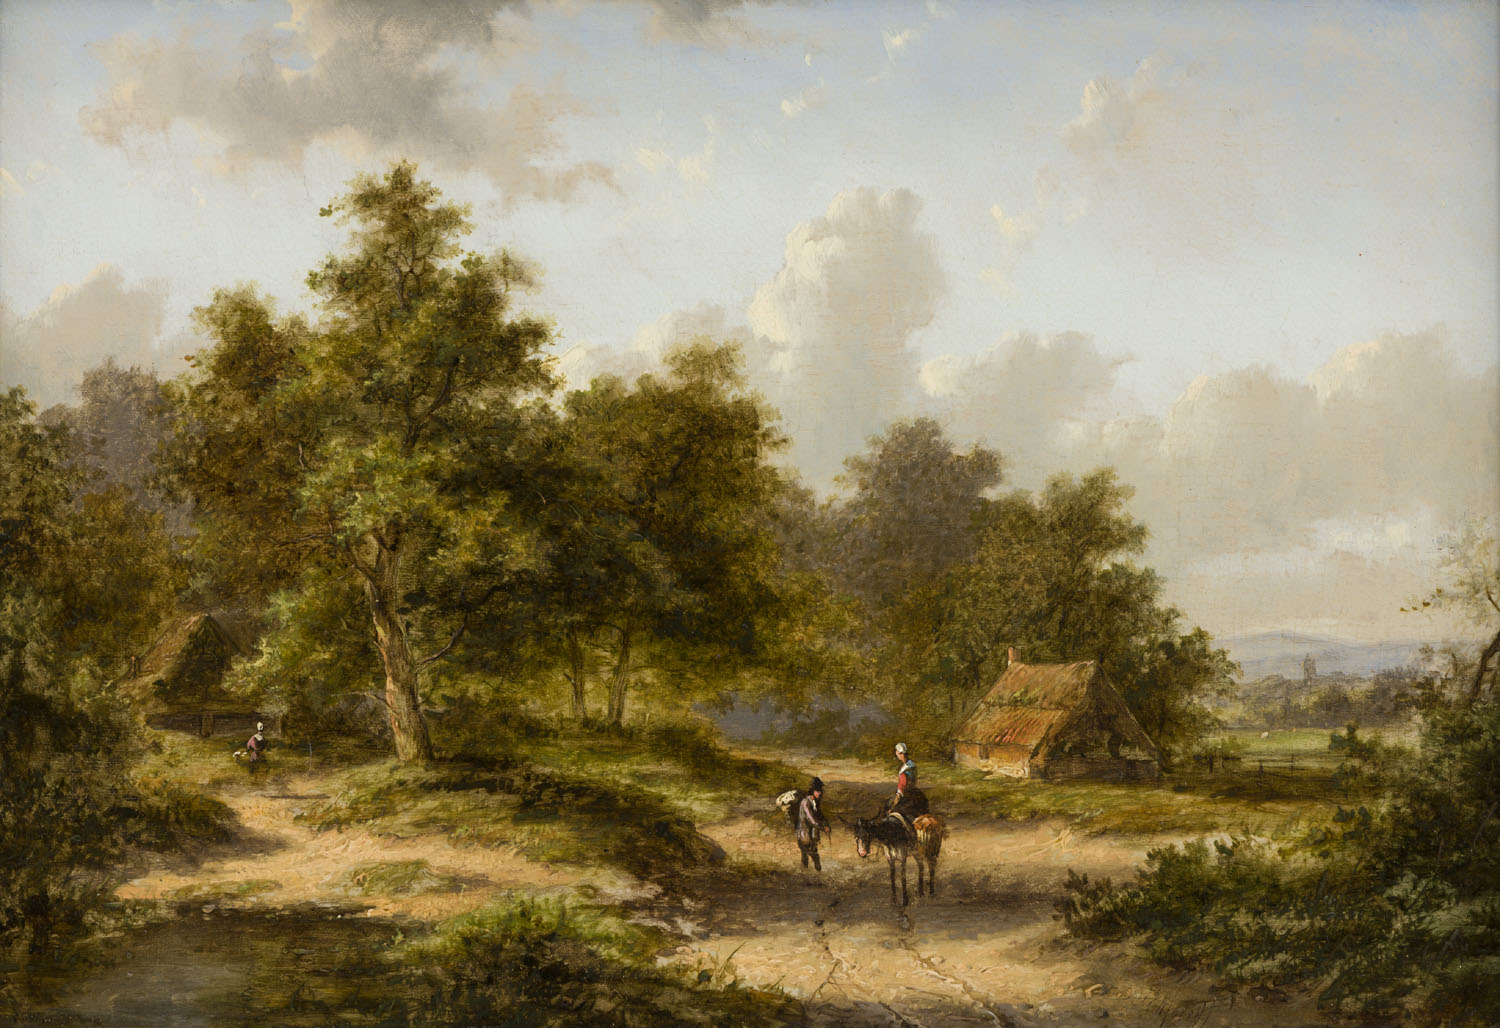 Jan Evert Morel II | A summer landscape with figures on a country road | Kunsthandel Bies | Bies Gallery